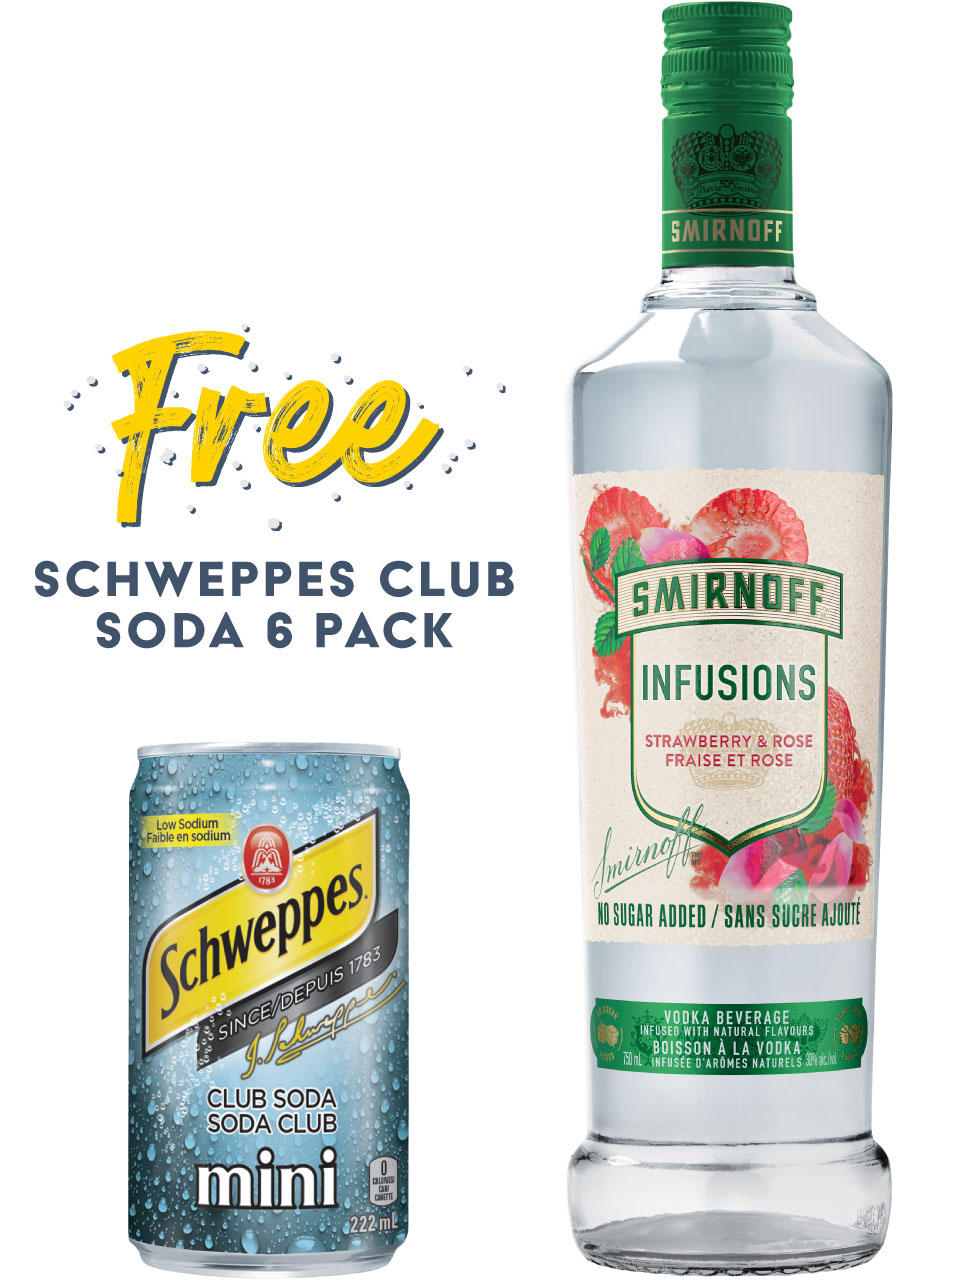 Smirnoff Infusions Strawberry & Rose Vodka